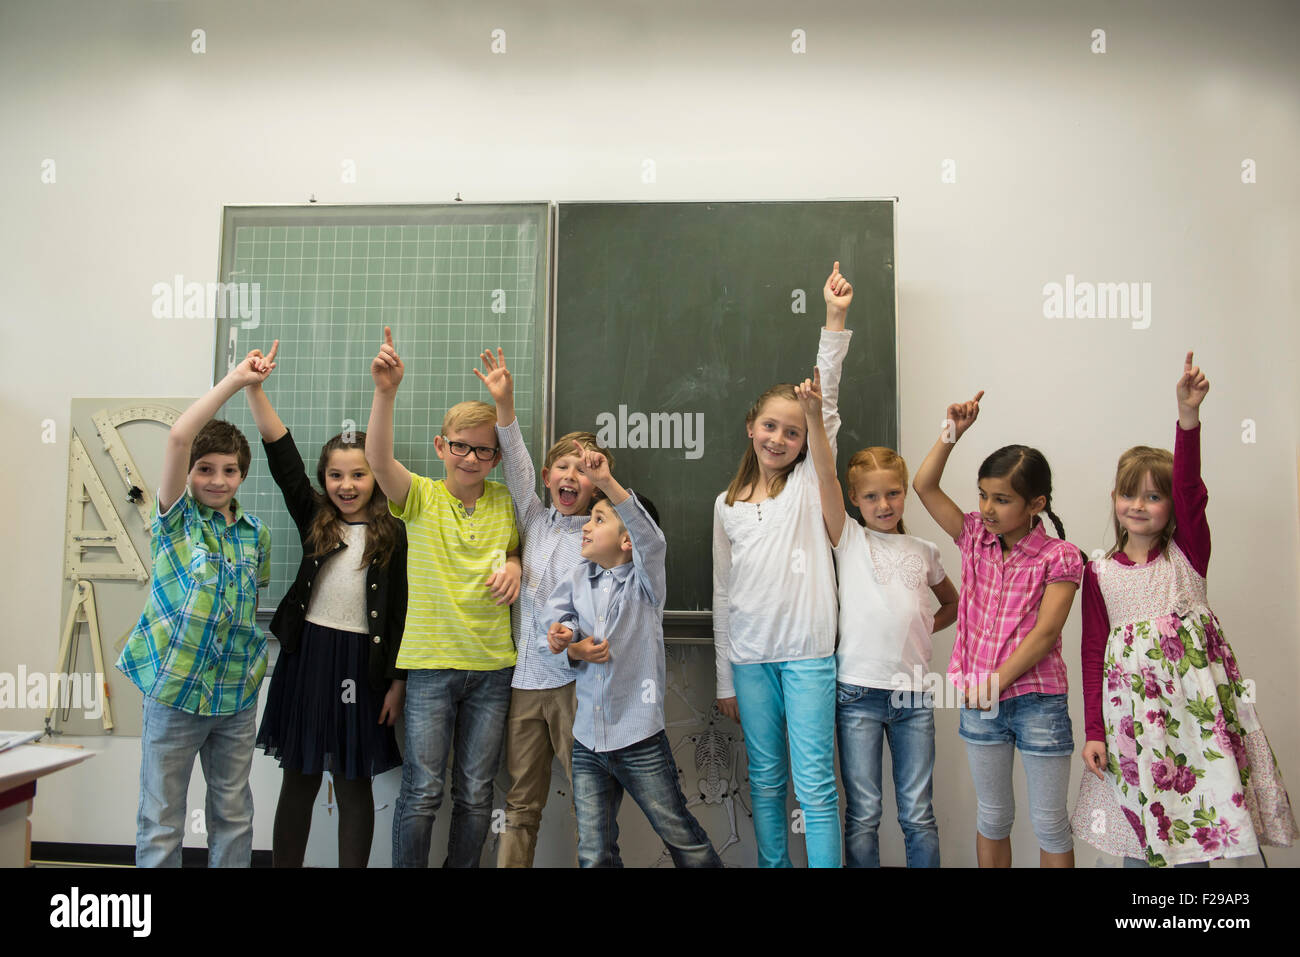 School students raising hands in front of blackboard in classroom, Munich, Bavaria, Germany - Stock Image